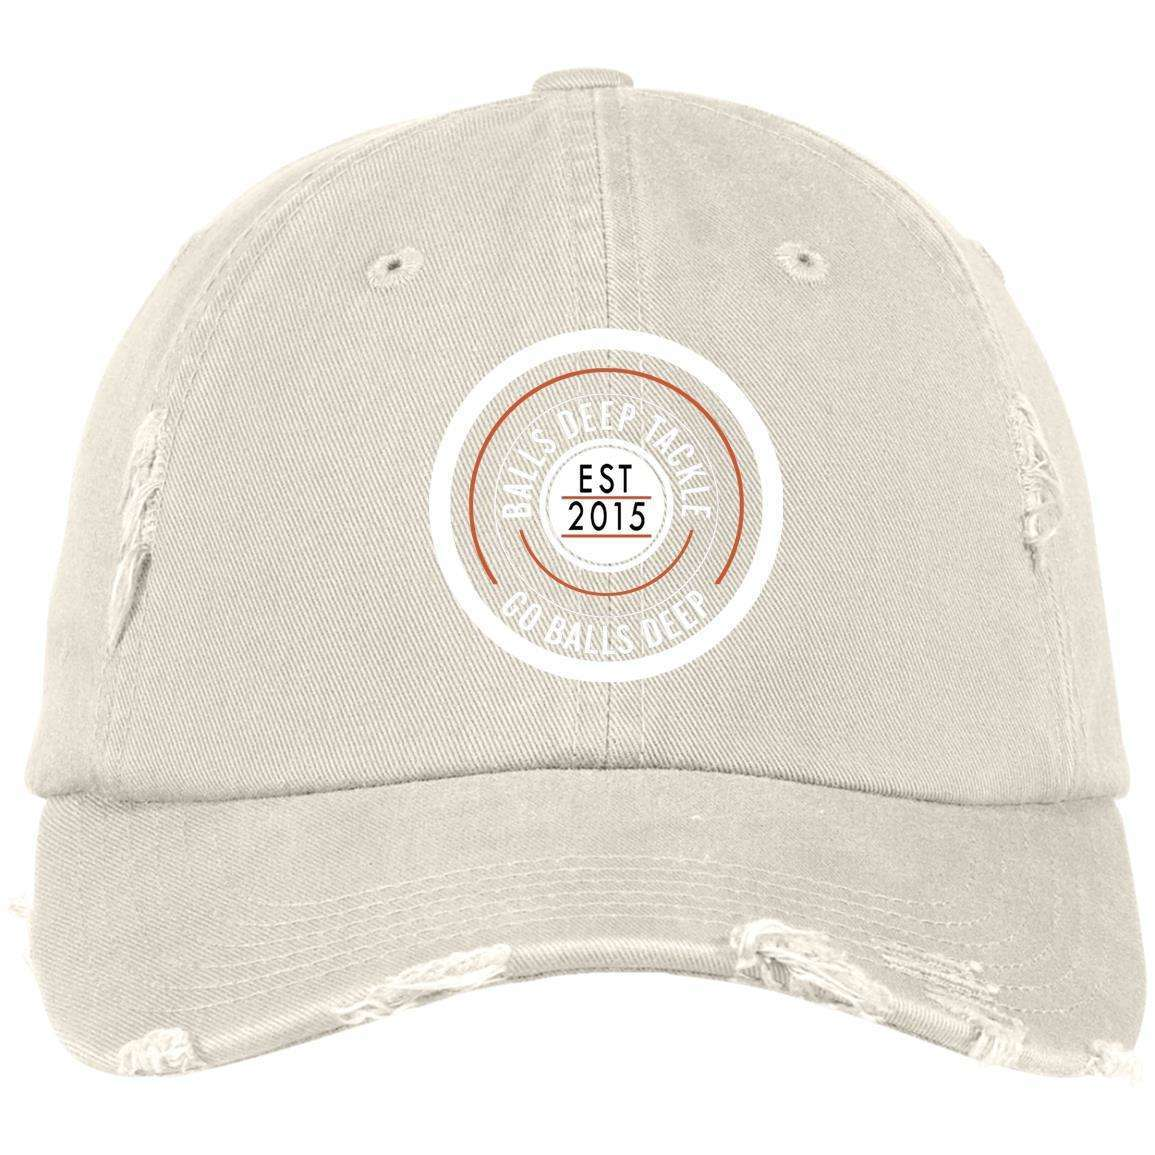 Est 2015 Patch (White) Distressed Dad Cap